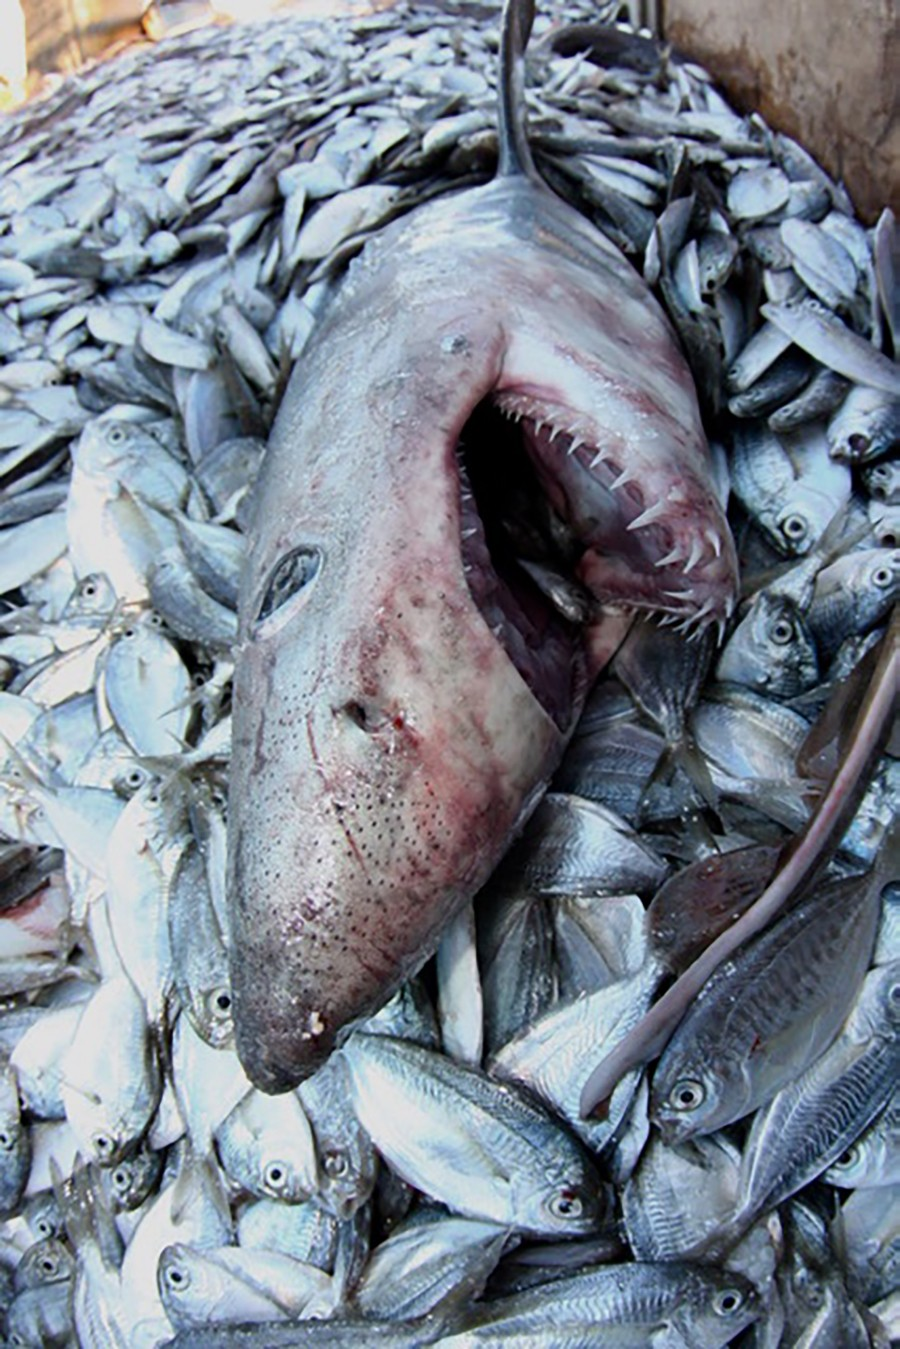 With a great variety of shark species off the coast of New England, many species are    killed as by catch